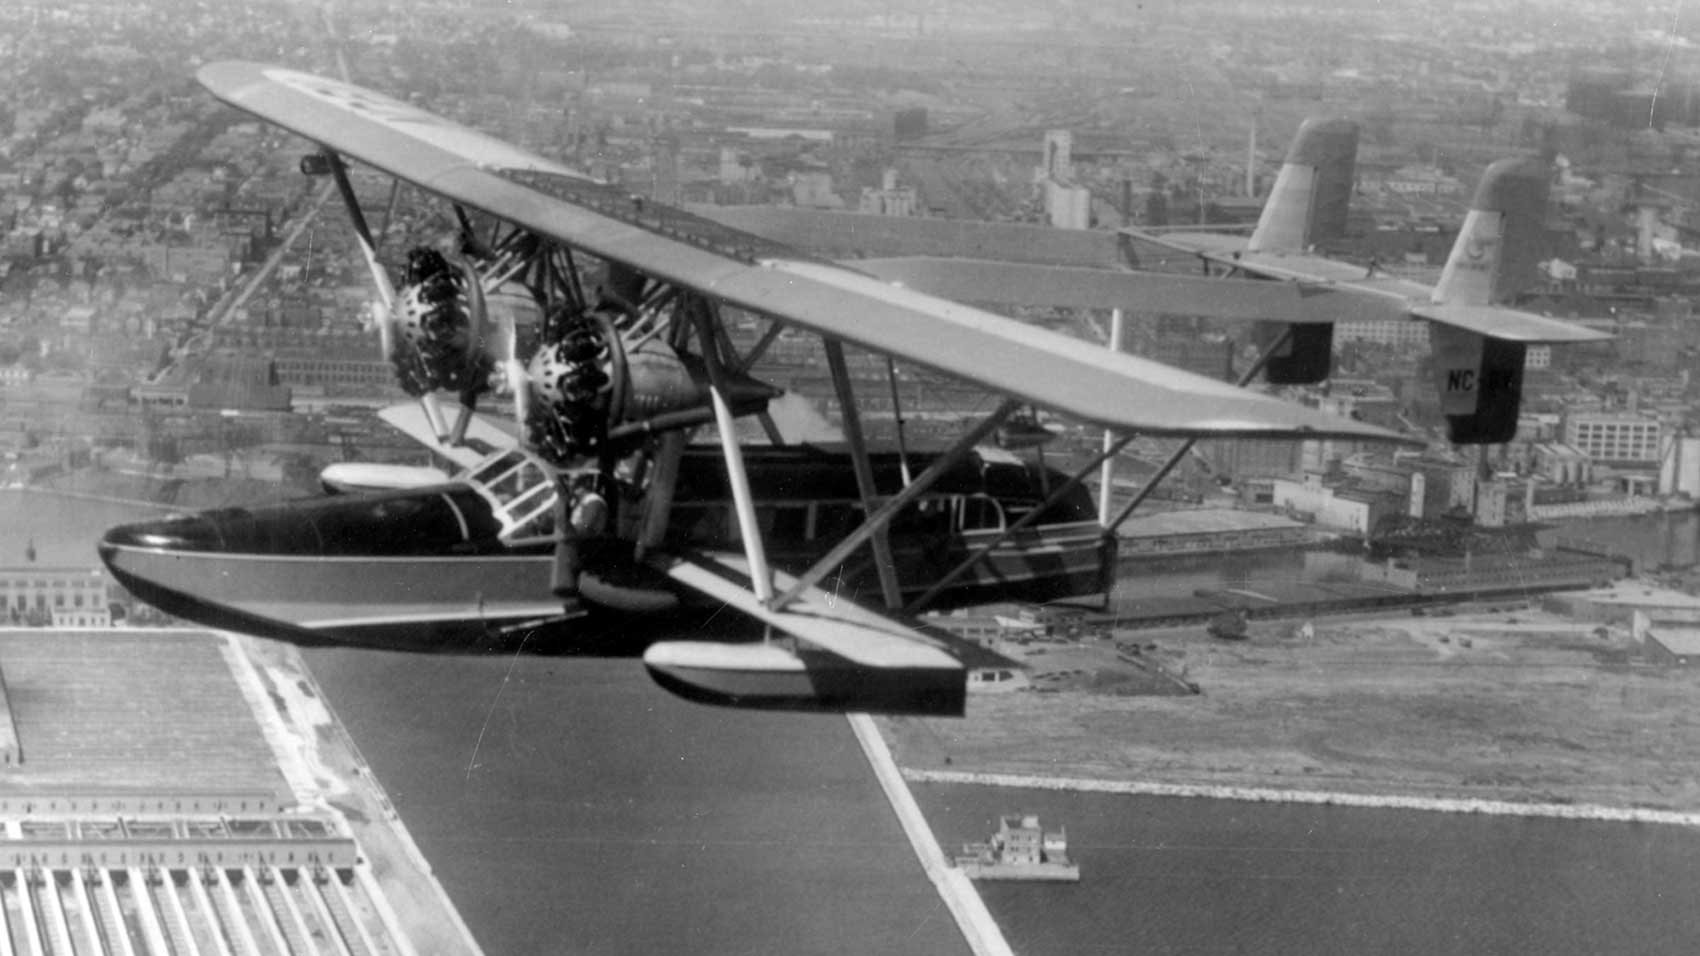 Herbert Johnson, Jr.'s Carnauba amphibious plane on flight to Brazil